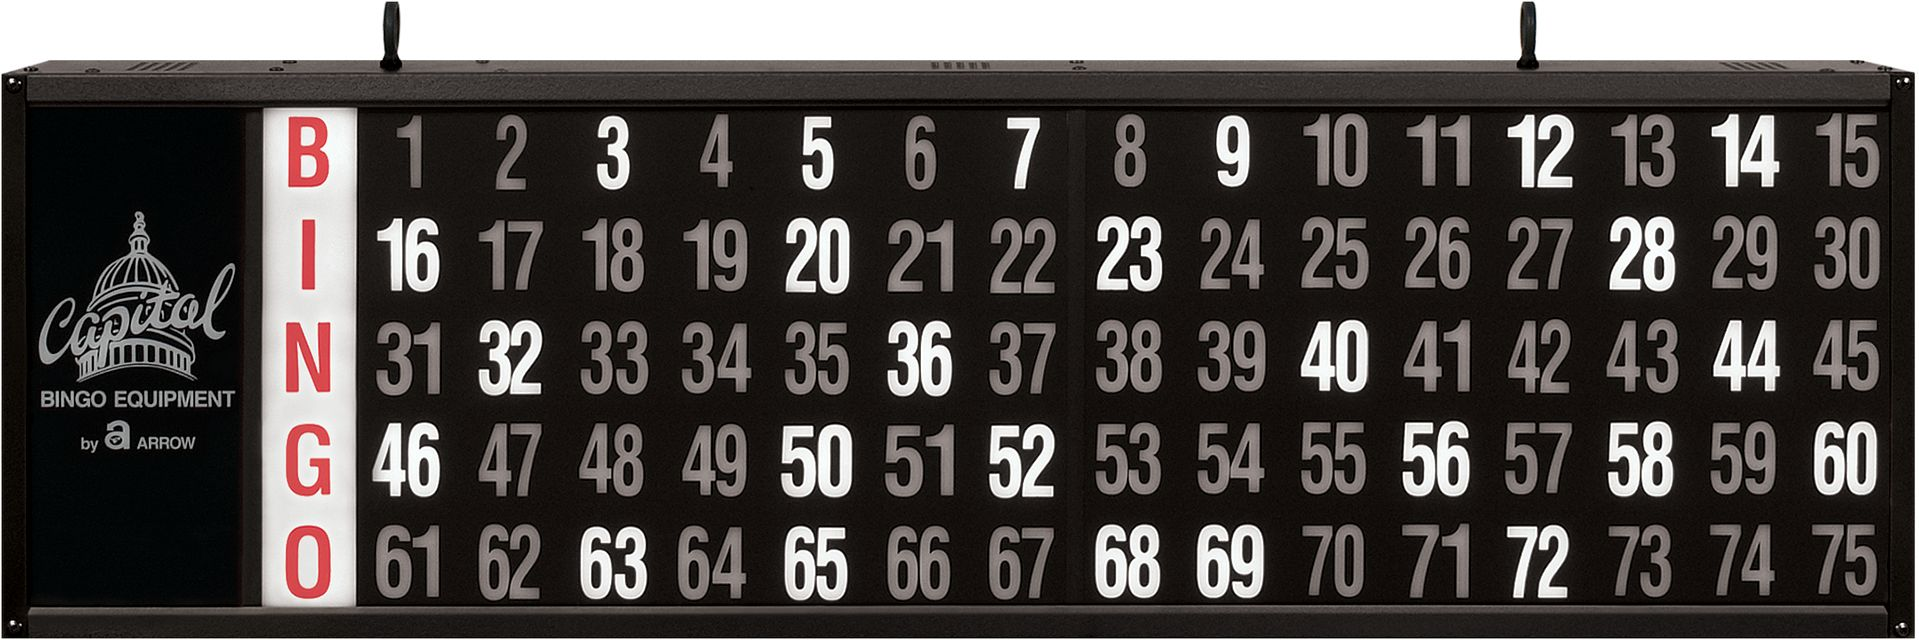 Access Numbers Only BINGO EQUIPMENT/Flashboards